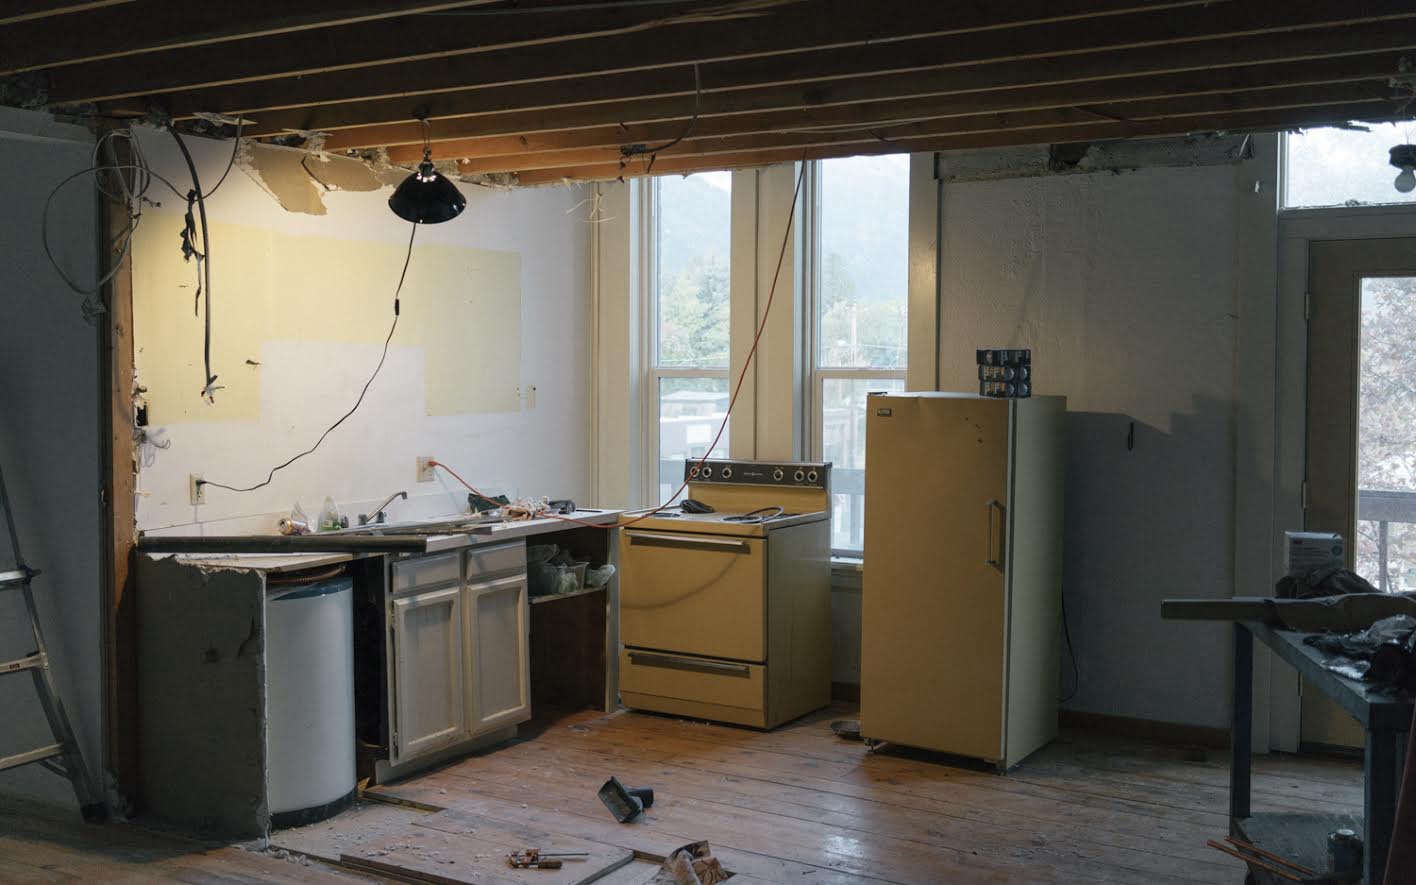 They demolished the kitchen; it had been poorly constructed and only the plumbing was usable.